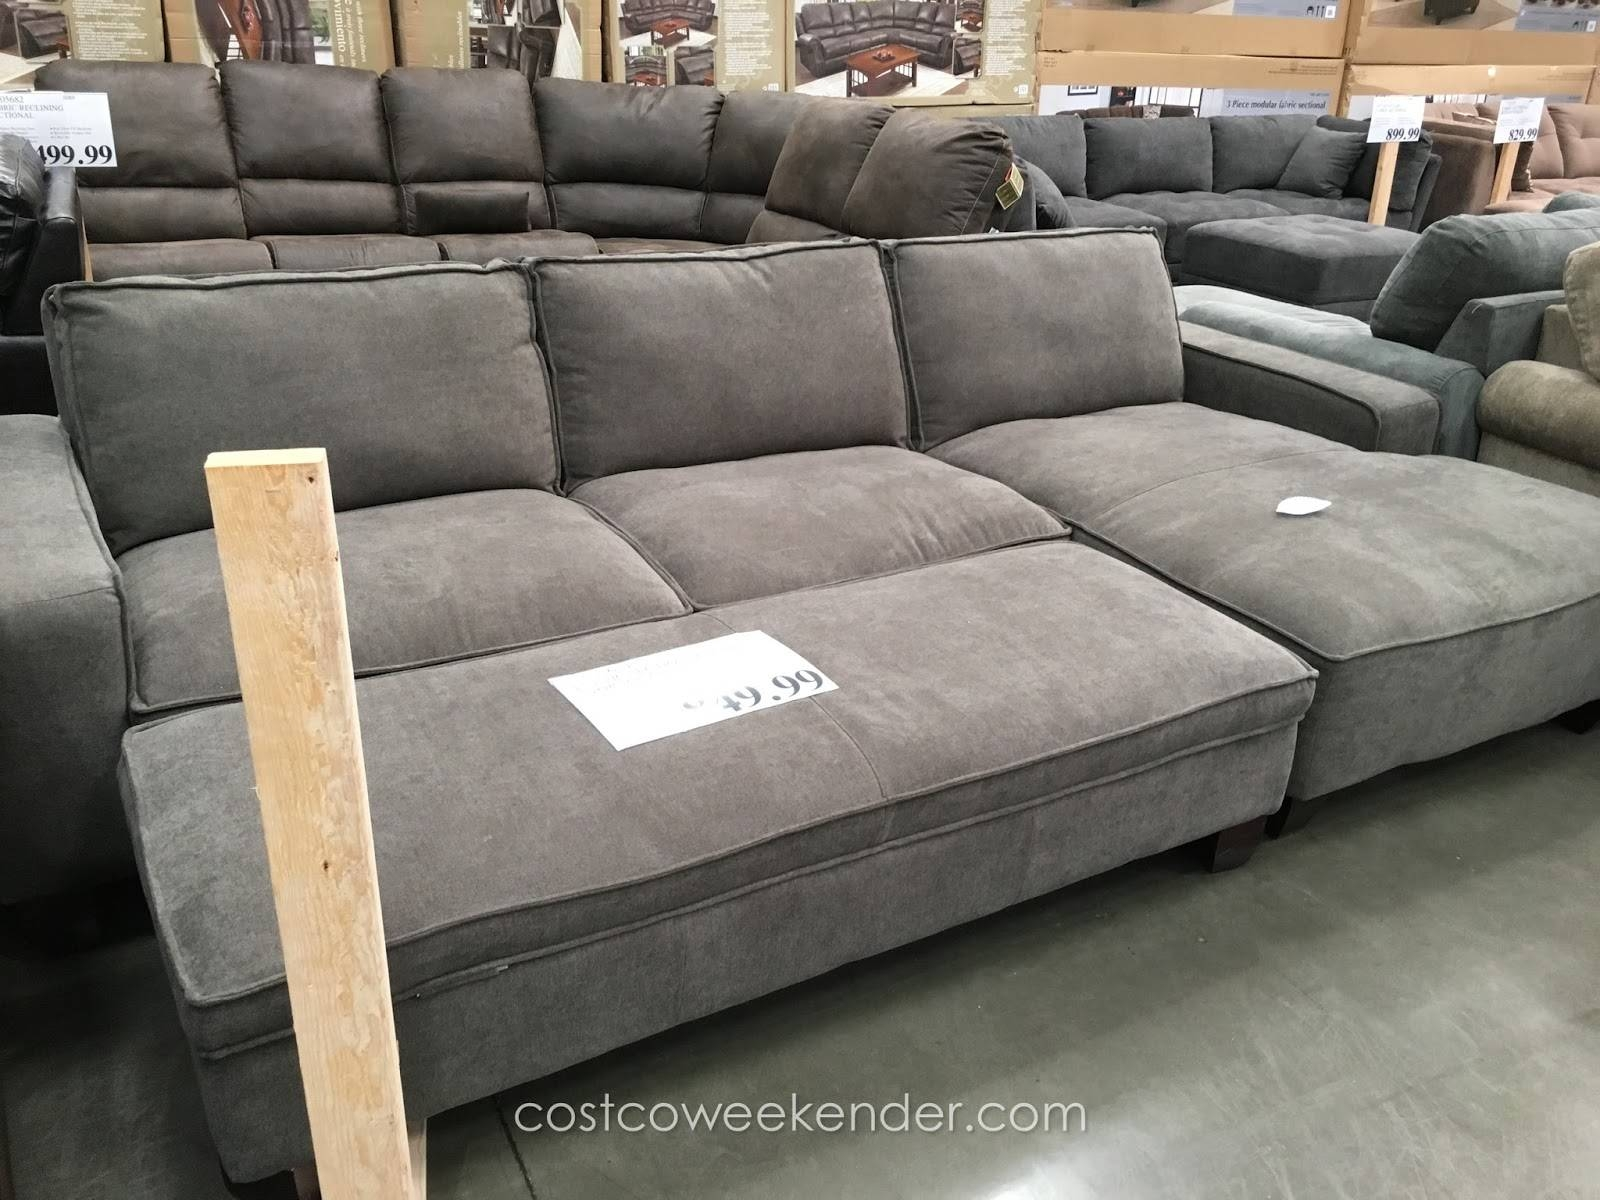 Sofas Center : Costco Recliner Sofa Sectional With Chaise inside Berkline Sofa (Image 26 of 30)